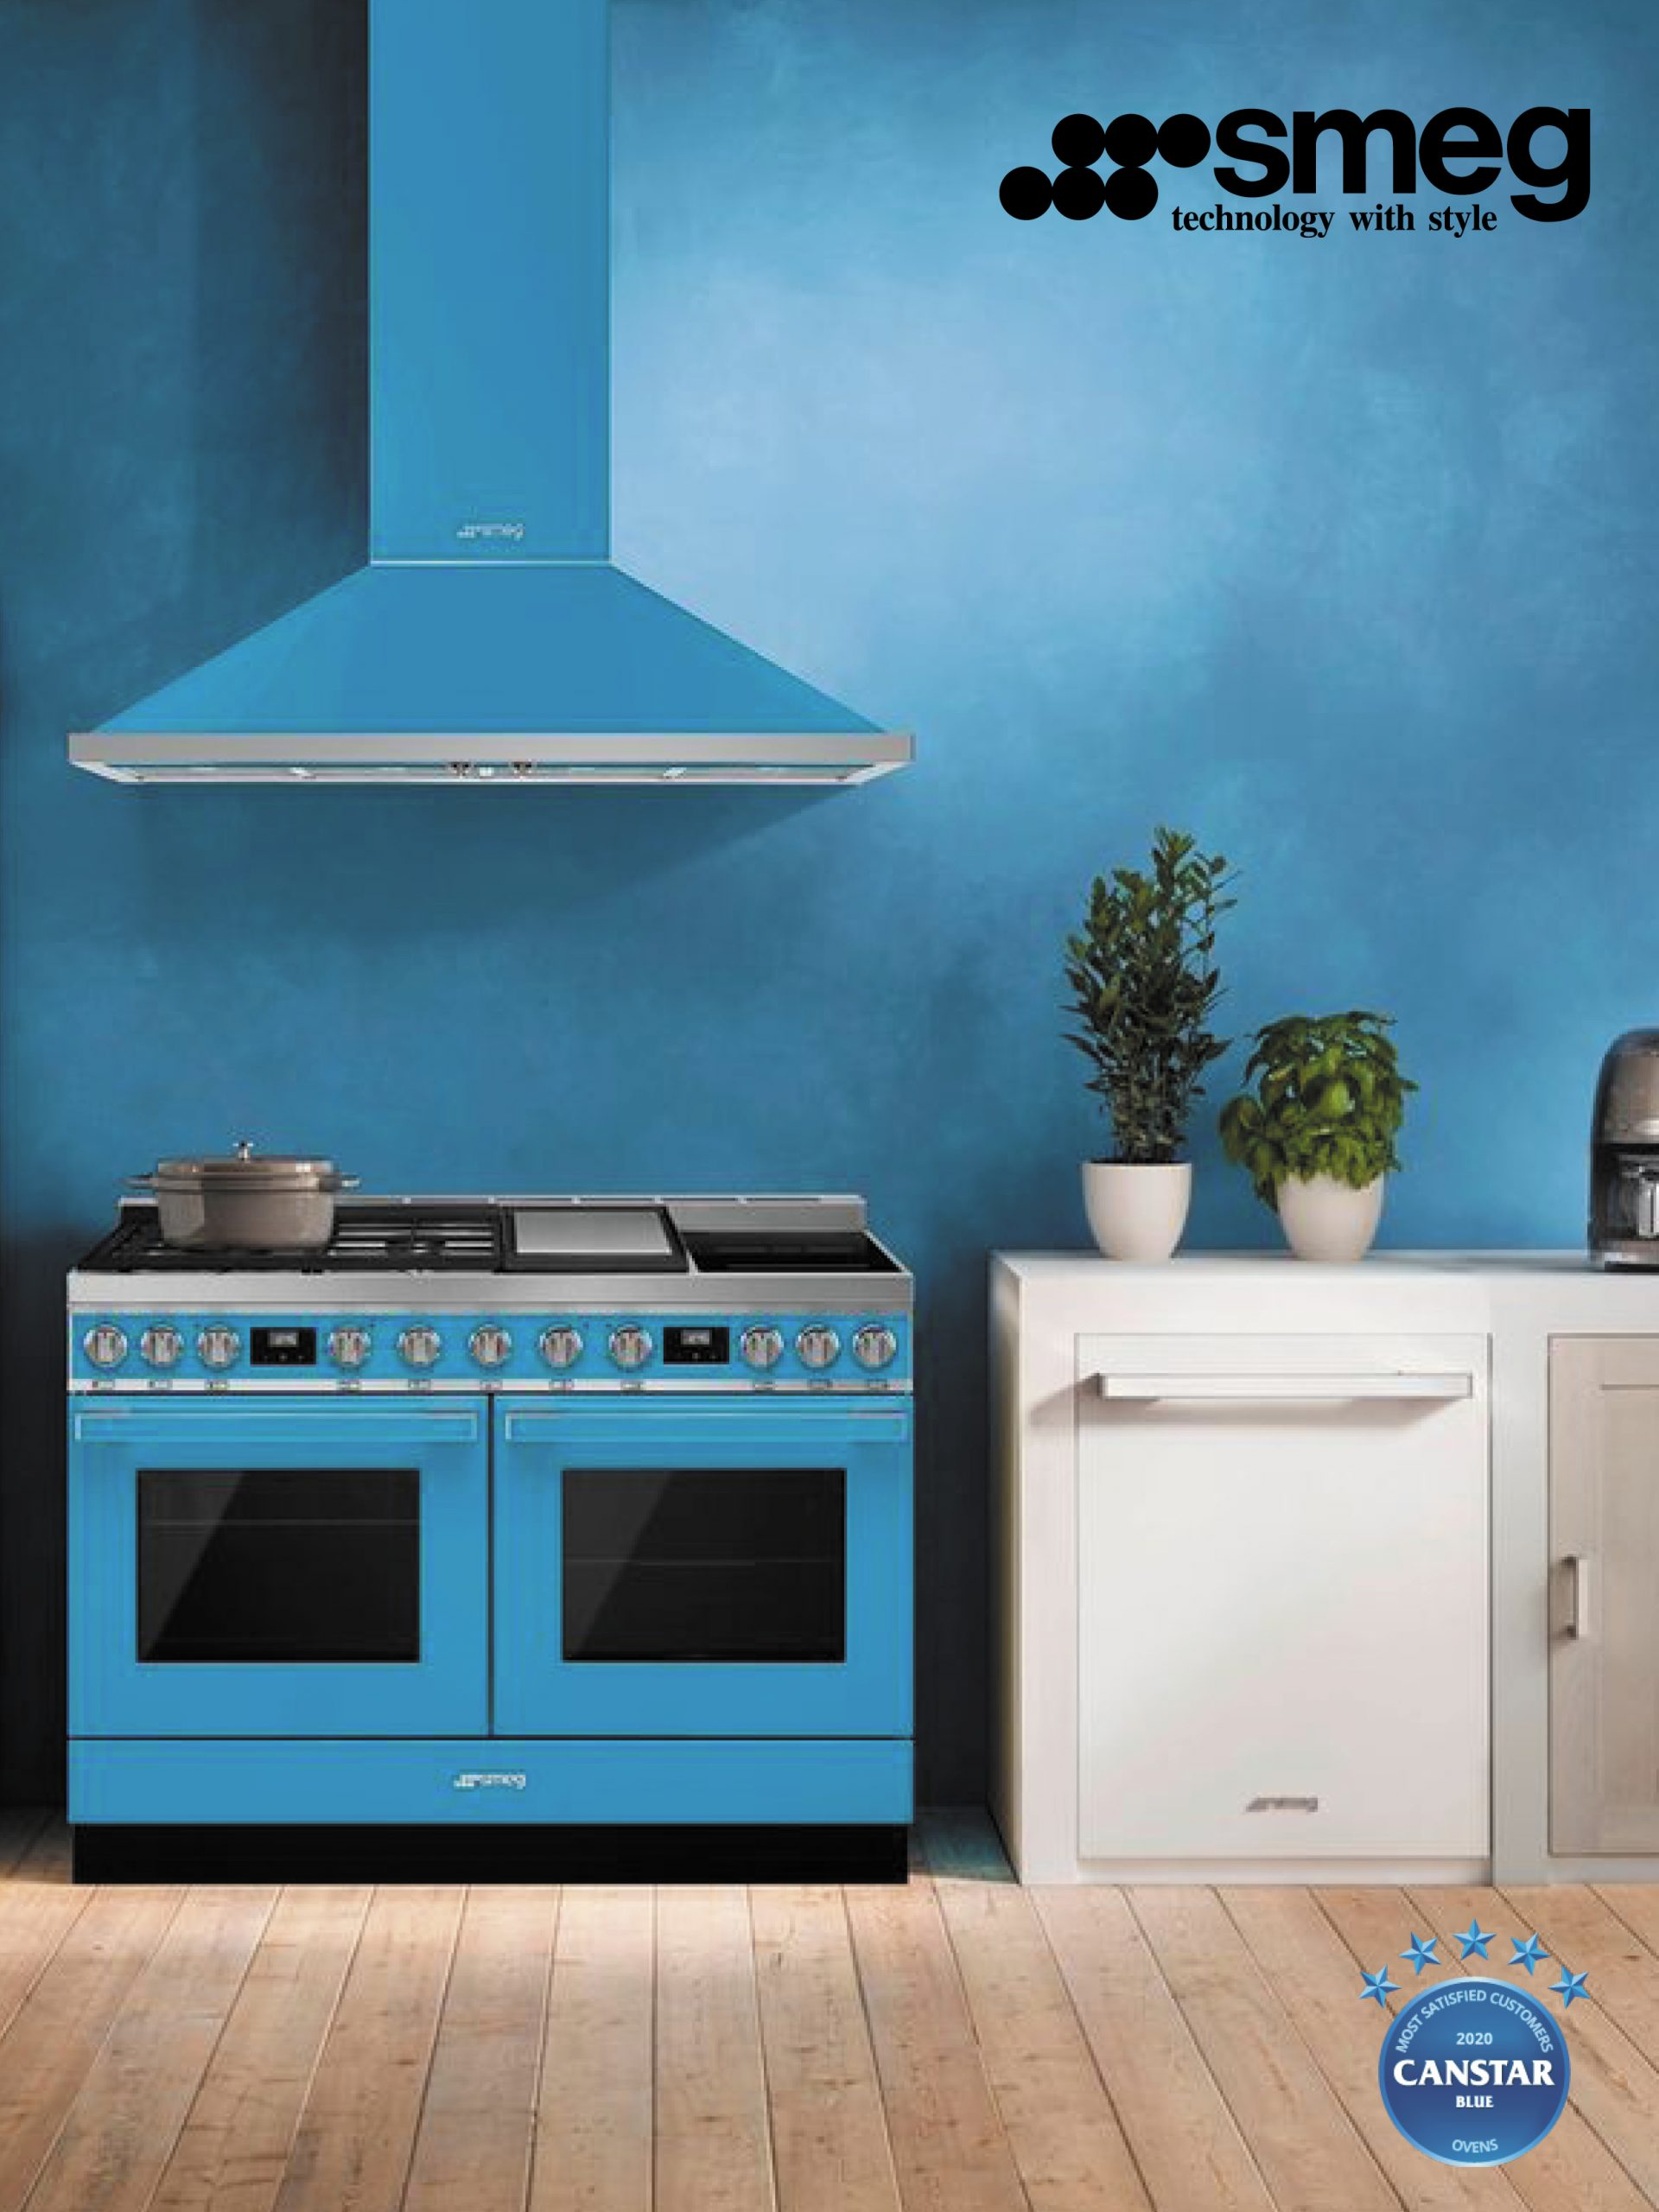 2021-Smeg-Canstar_BLOG-Feature-Image